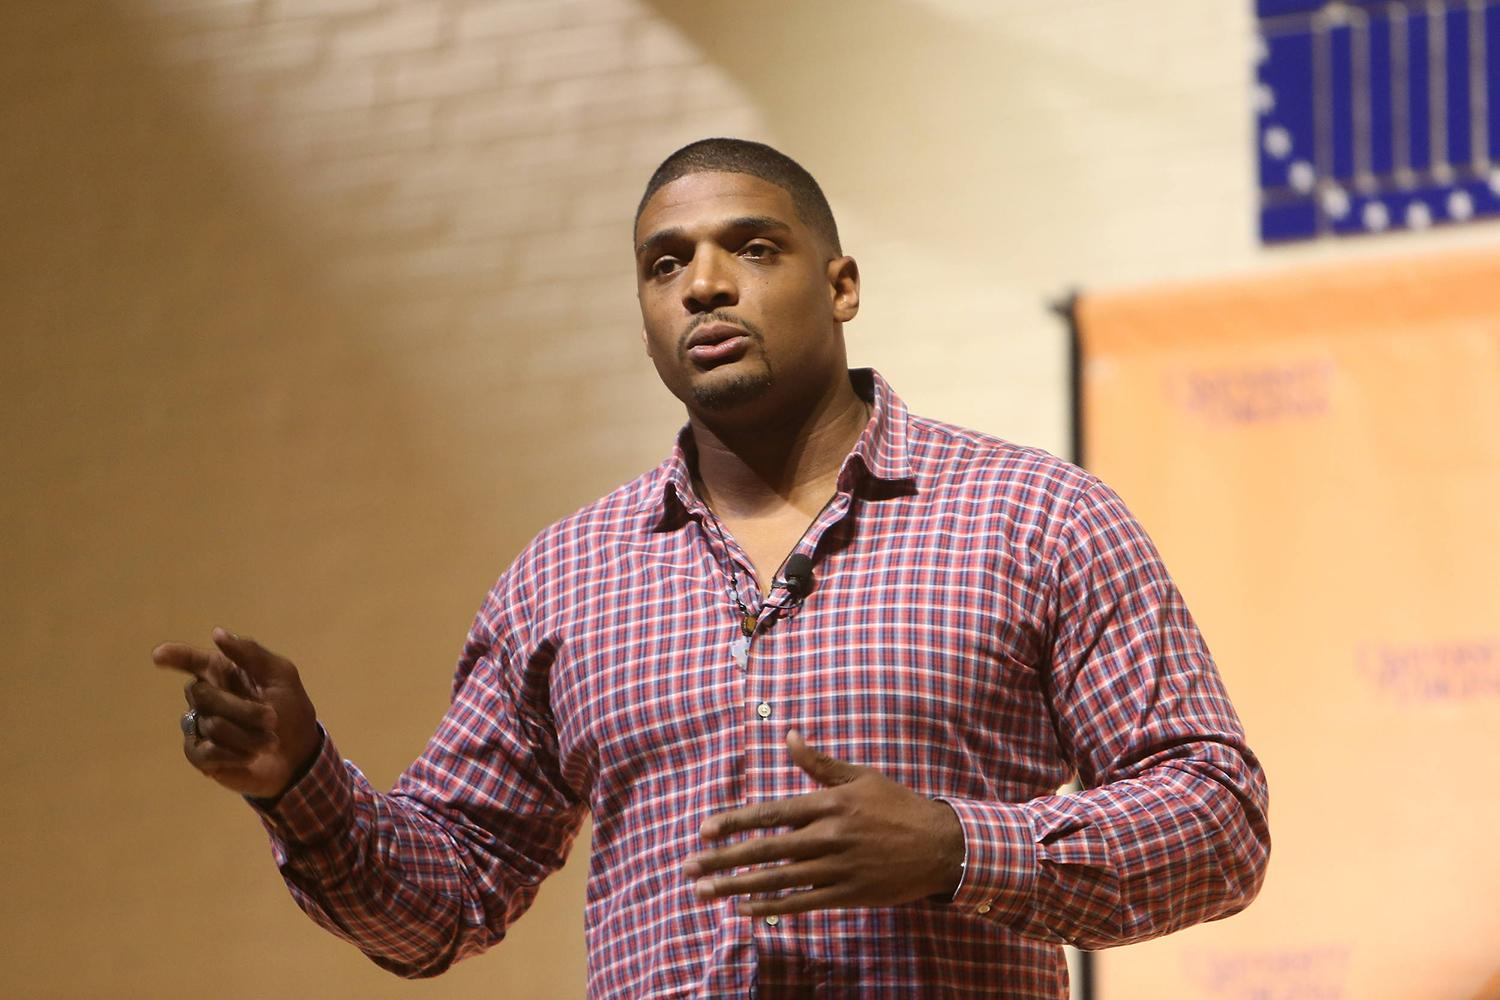 Former University of Missouri star Michael Sam was selected by the St. Louis Rams in the 2014 NFL Draft. (Photos by Richard Dizon, University Communications)